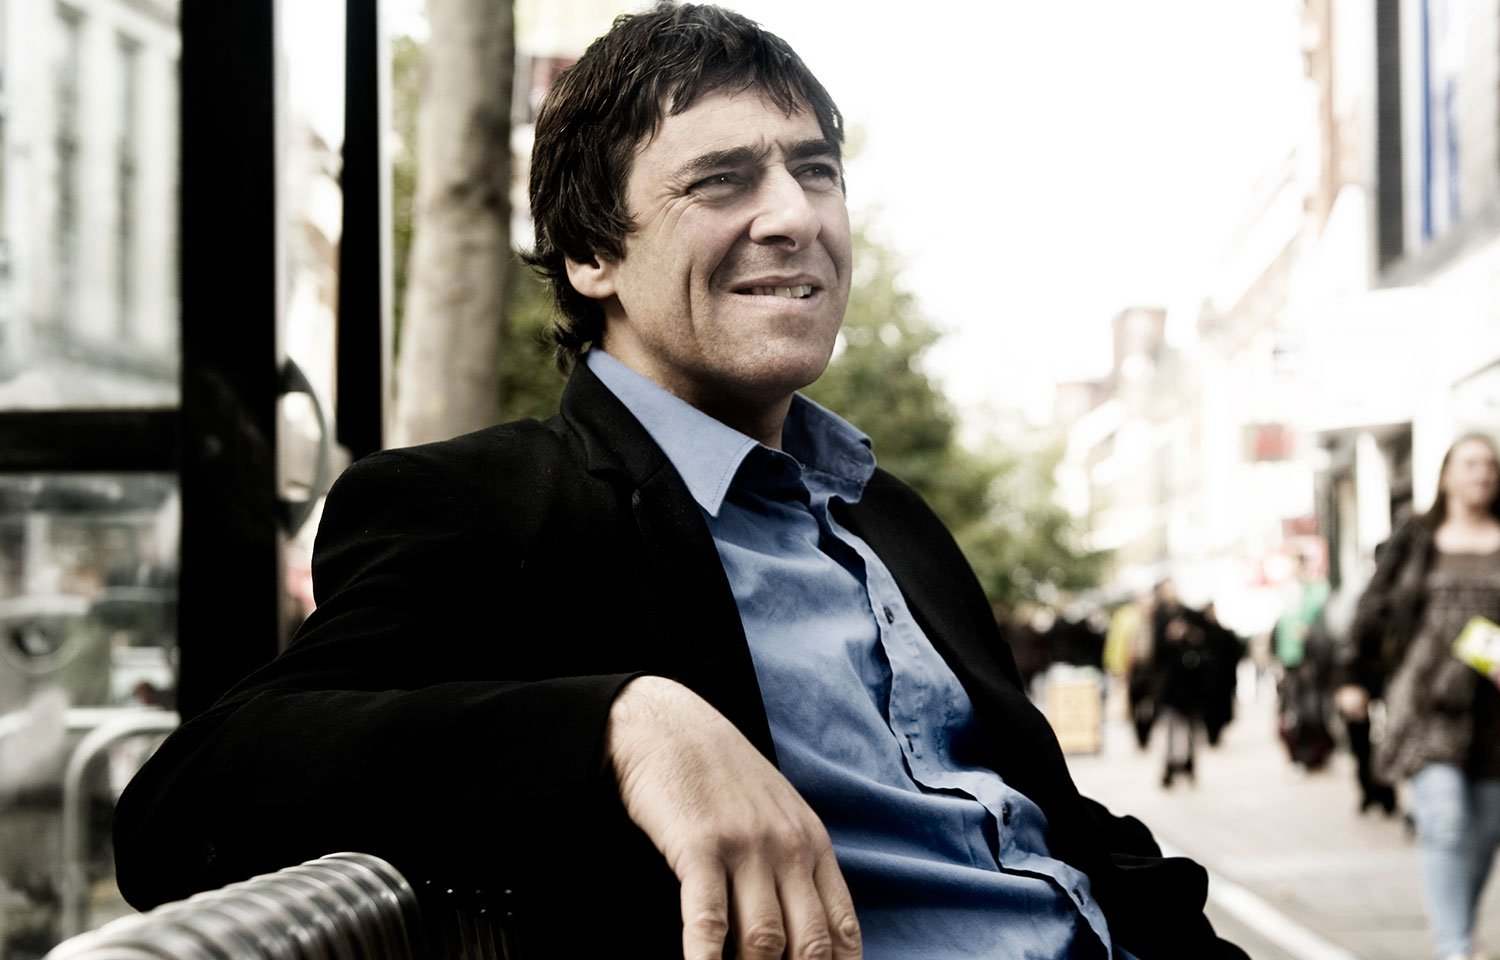 MARK STEEL WINS AT THE BBC RADIO & MUSIC AWARDS